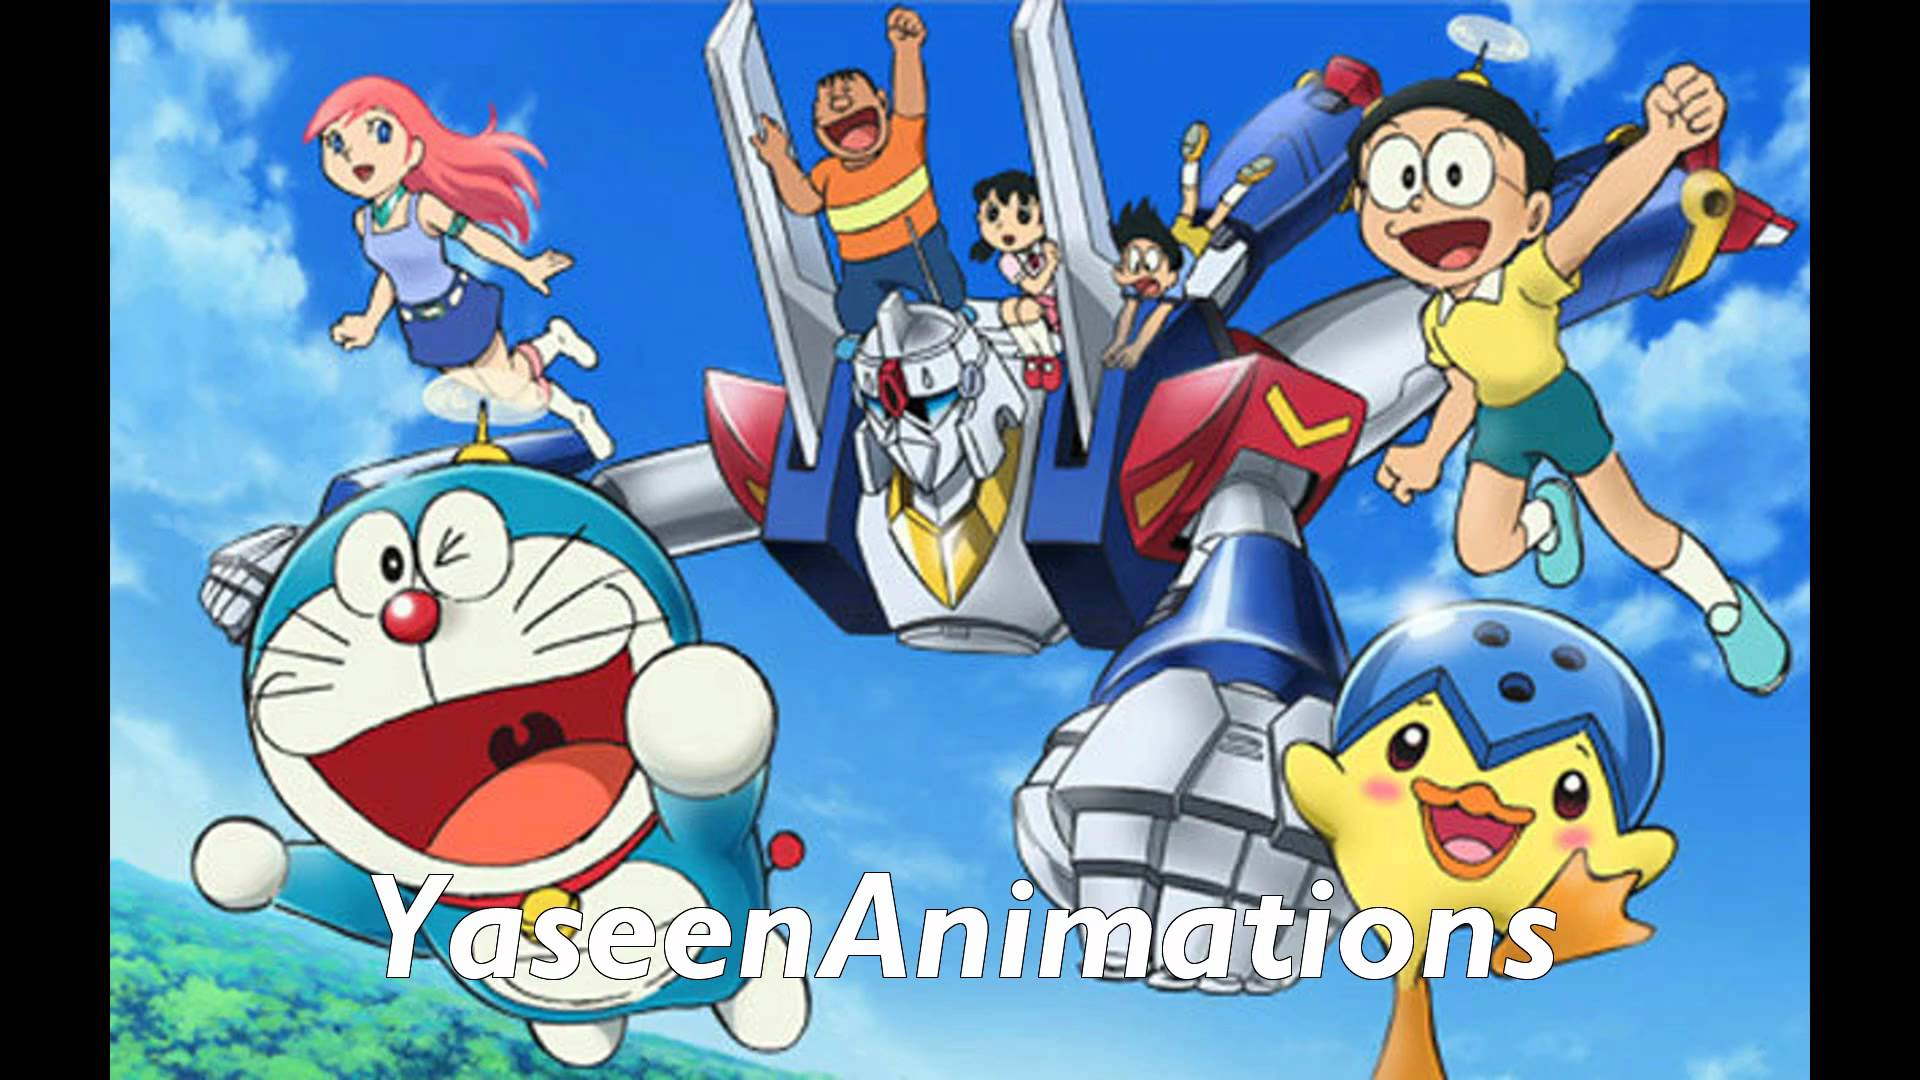 Doraemon 3d wallpapers 2015 wallpaper cave images for doraemon and nobita images hd voltagebd